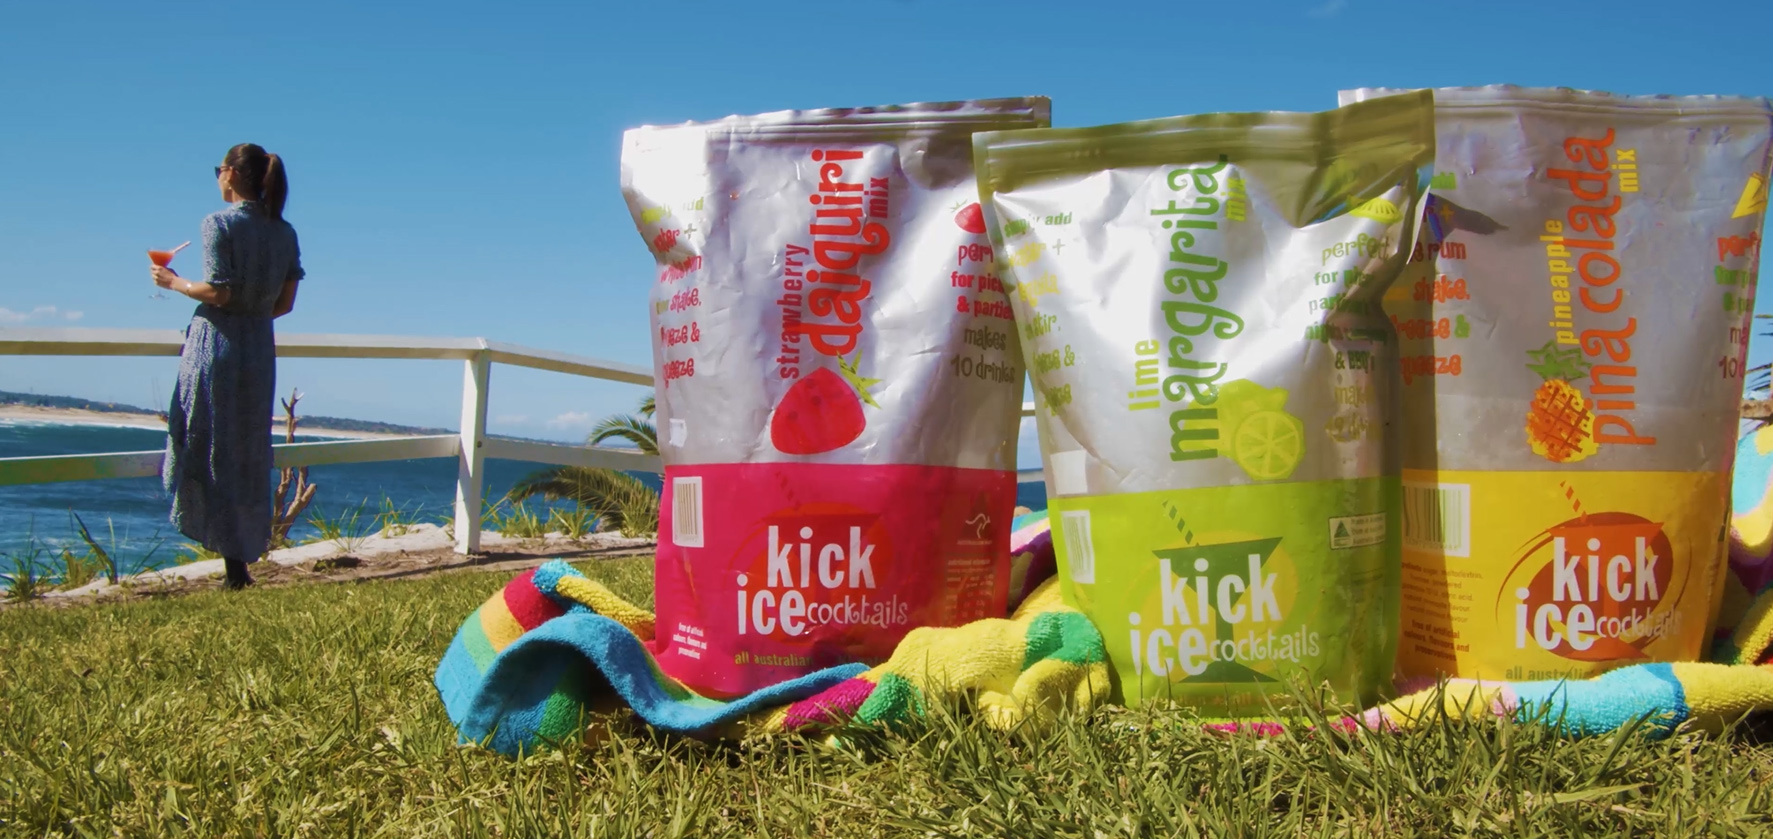 Kick Ice Cocktails